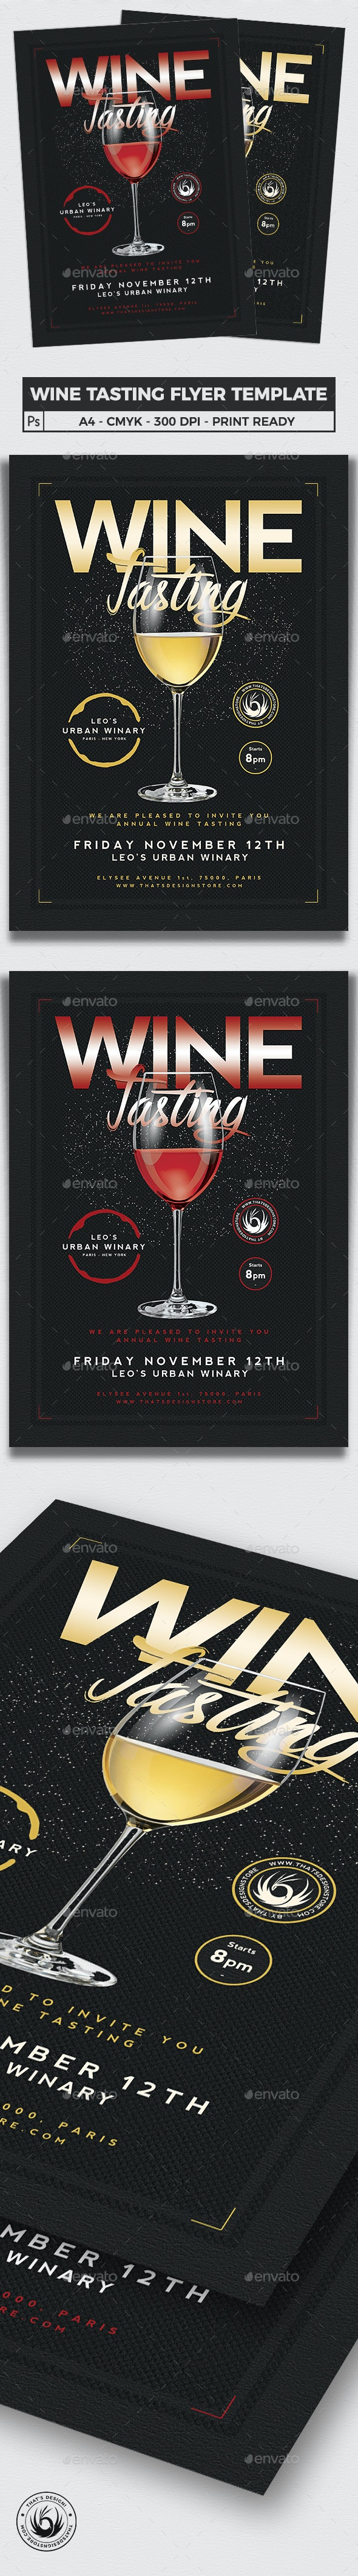 Wine Tasting Flyer Template V2 - Clubs & Parties Events